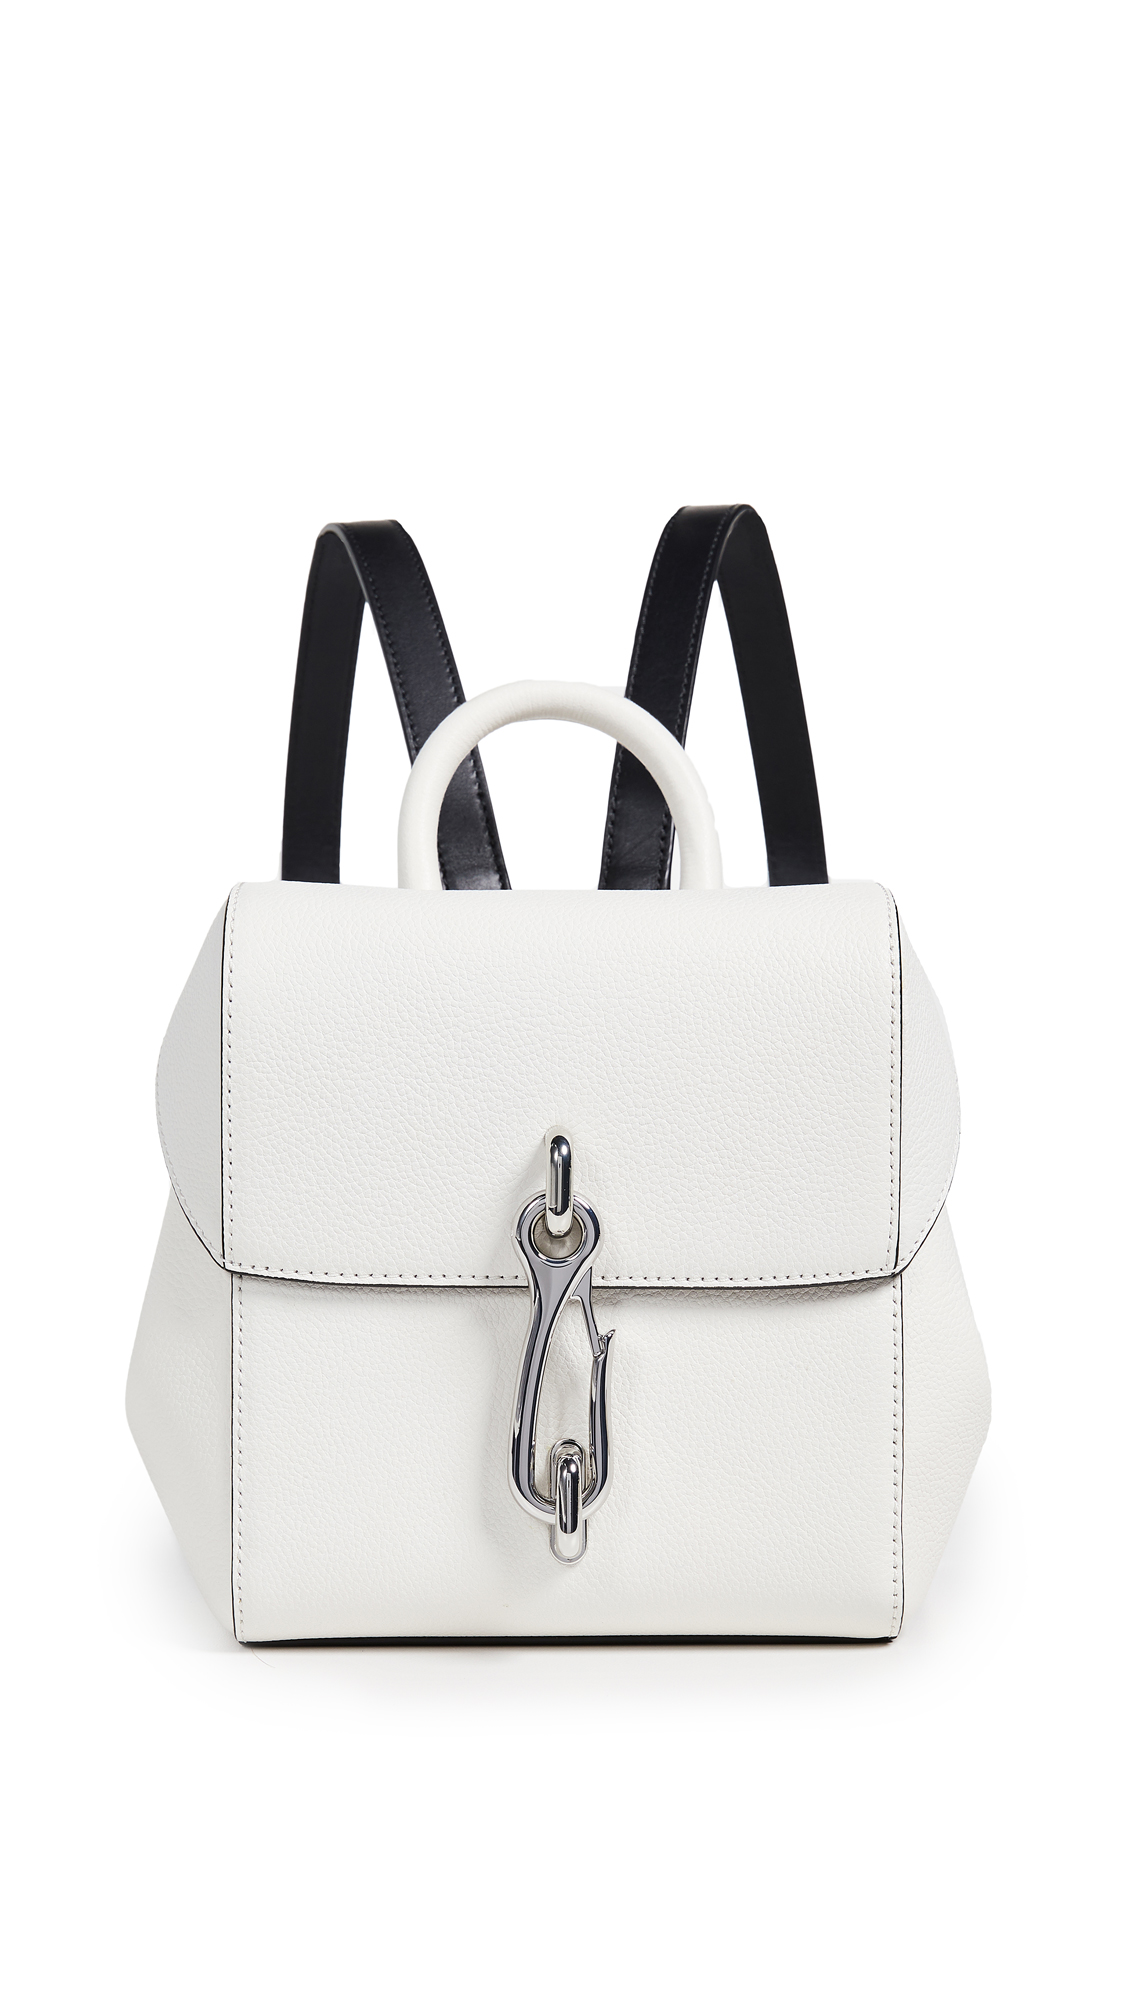 Shop Designer Backpacks For Women Modesens Tendencies Back Pack Arcus Navy Fashion Hook Mini Smooth And Textured Leather Backpack In White